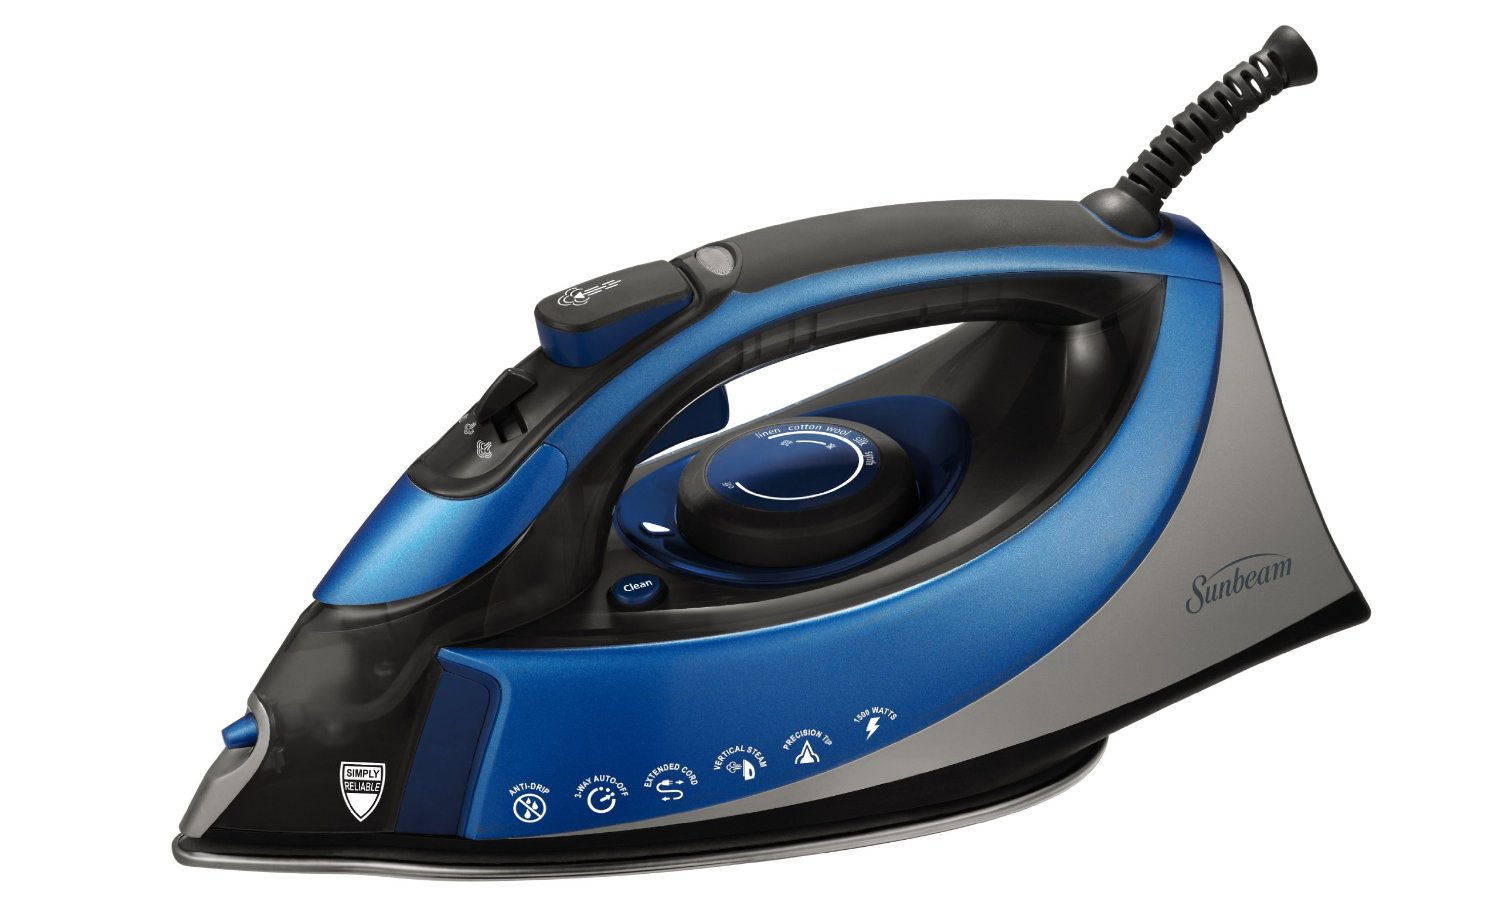 top 10 best steam irons reviews 2017 for home clothes. Black Bedroom Furniture Sets. Home Design Ideas